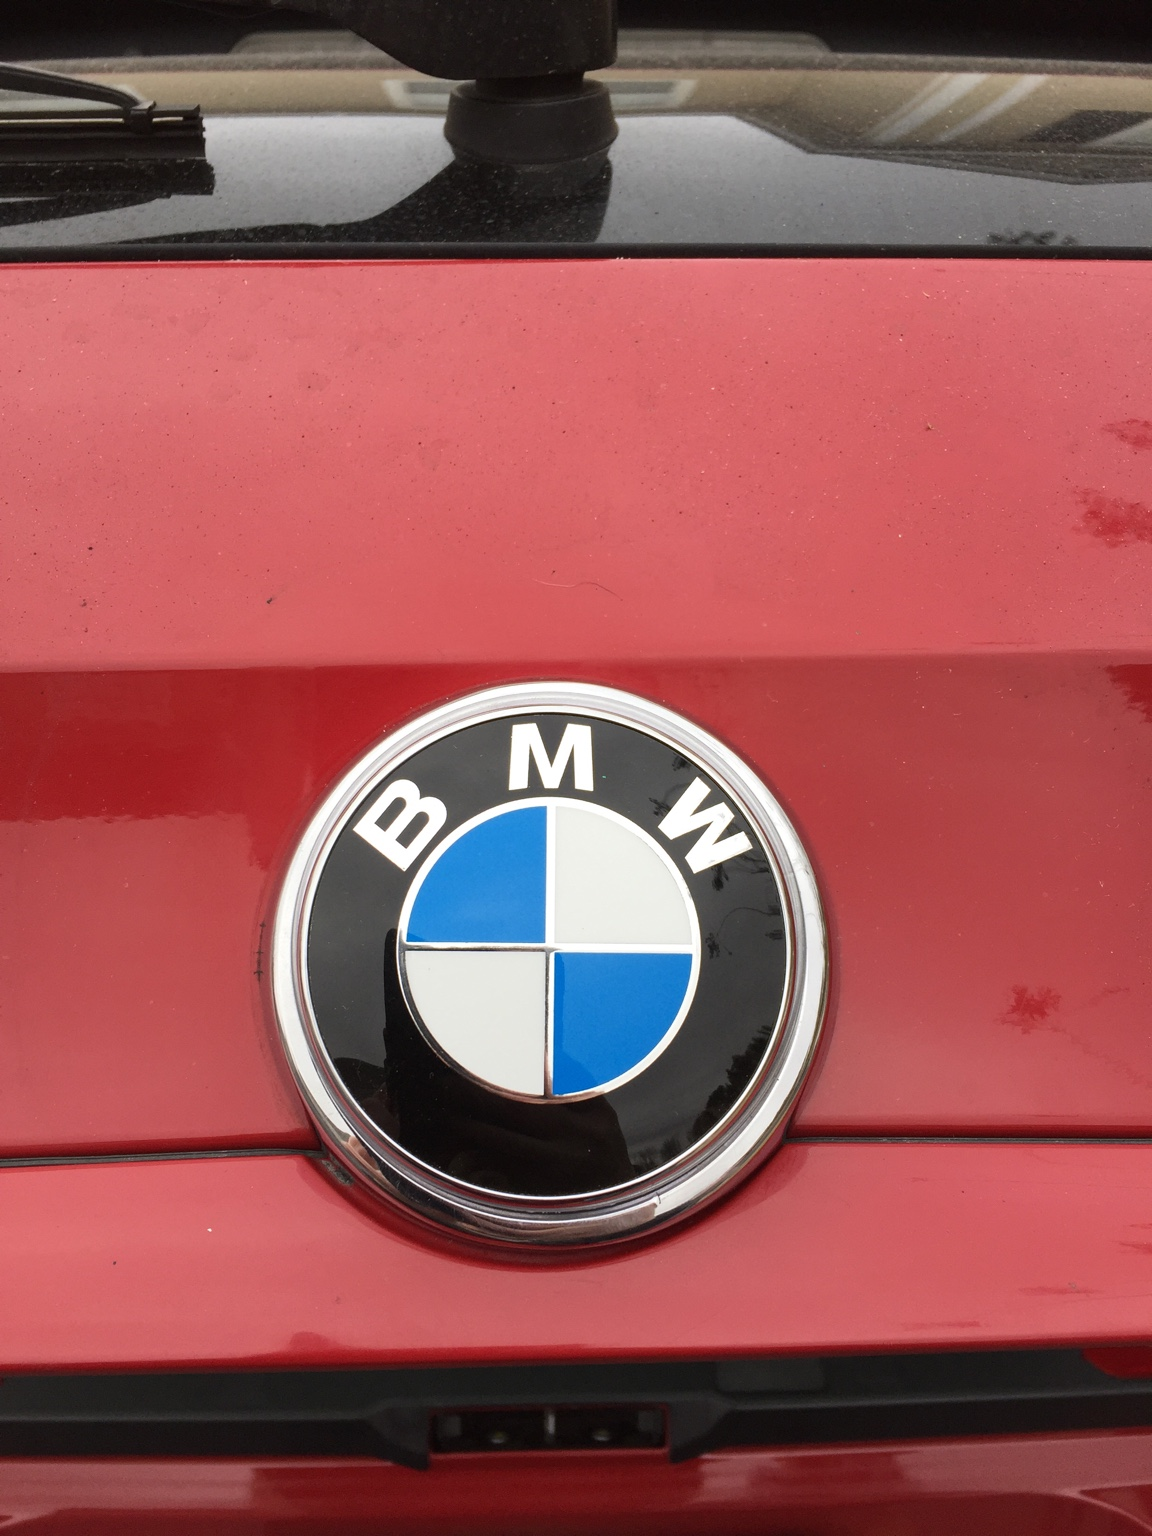 How To Replace Bmw Emblem On Trunk M3 Badge E90 E92 E93